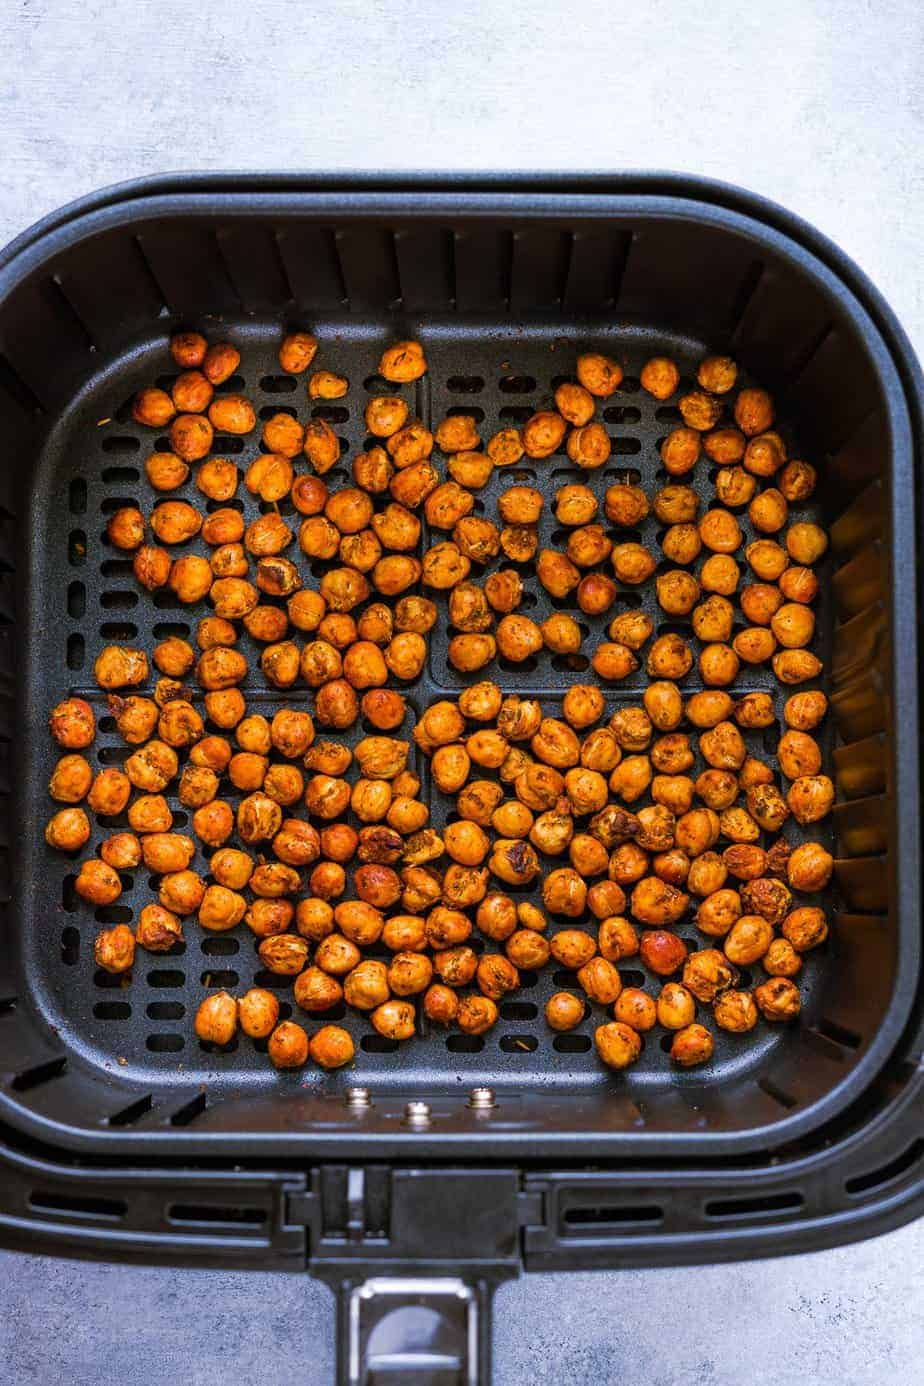 chickpeas in air fryer basket after cooking